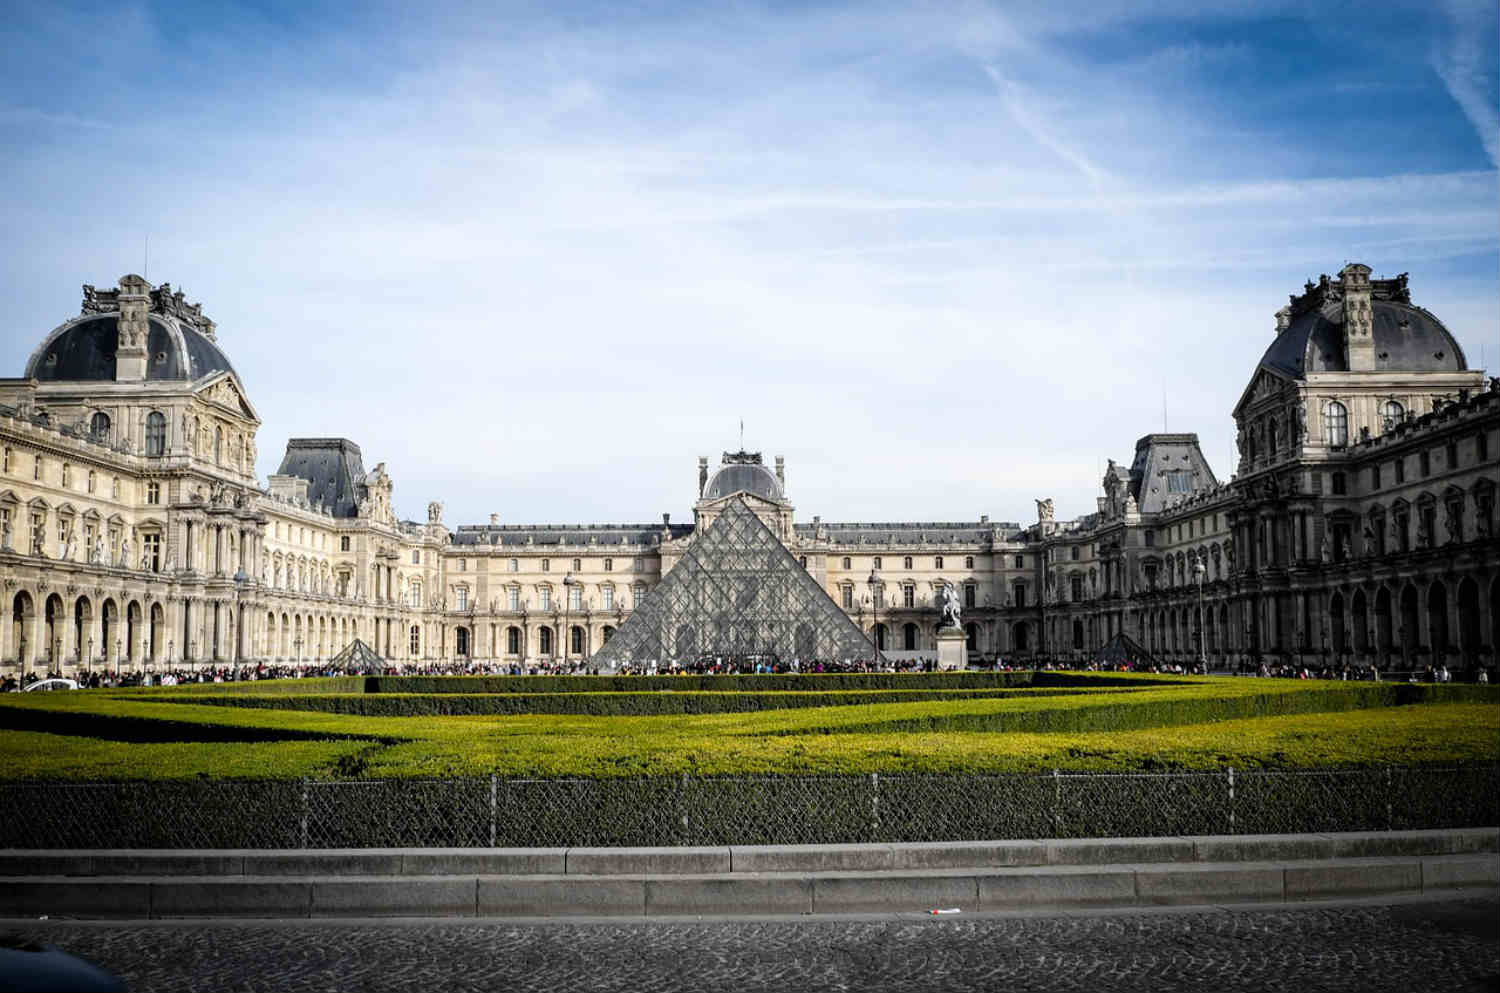 exterior of the louvre